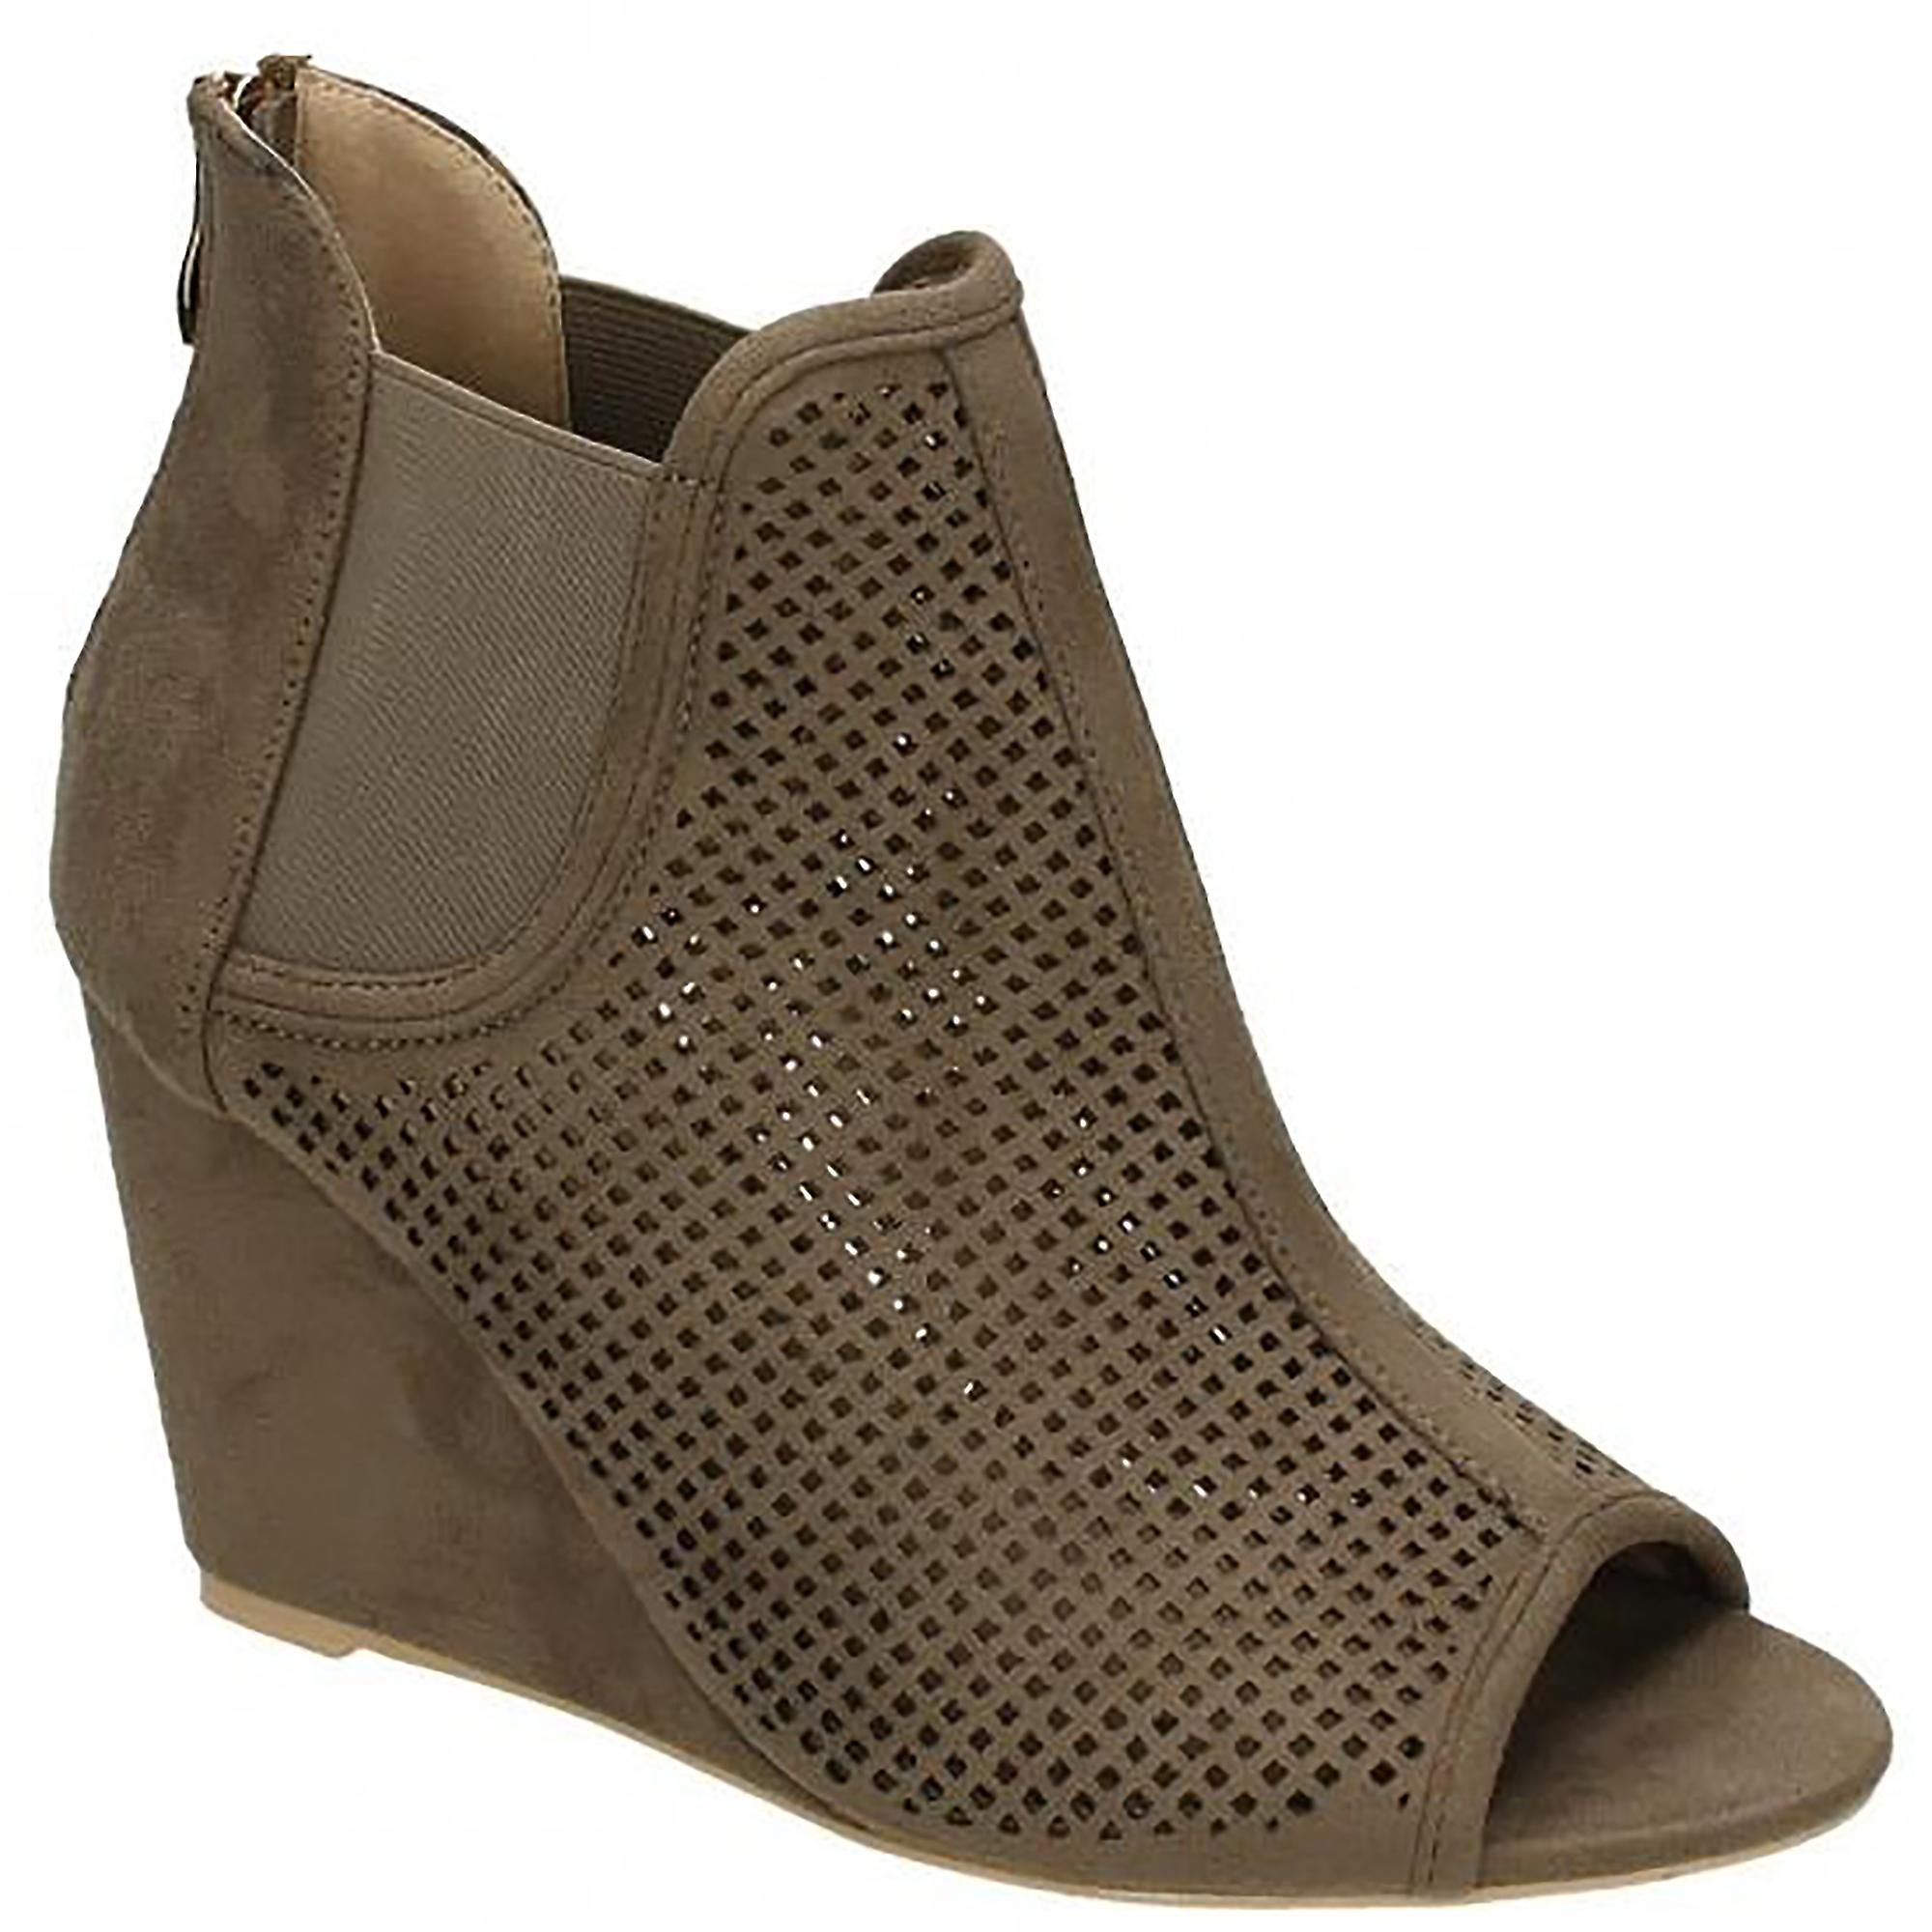 Punched Boots Wedge High Ladies Womens Peeptoe On Spot pnWASH6